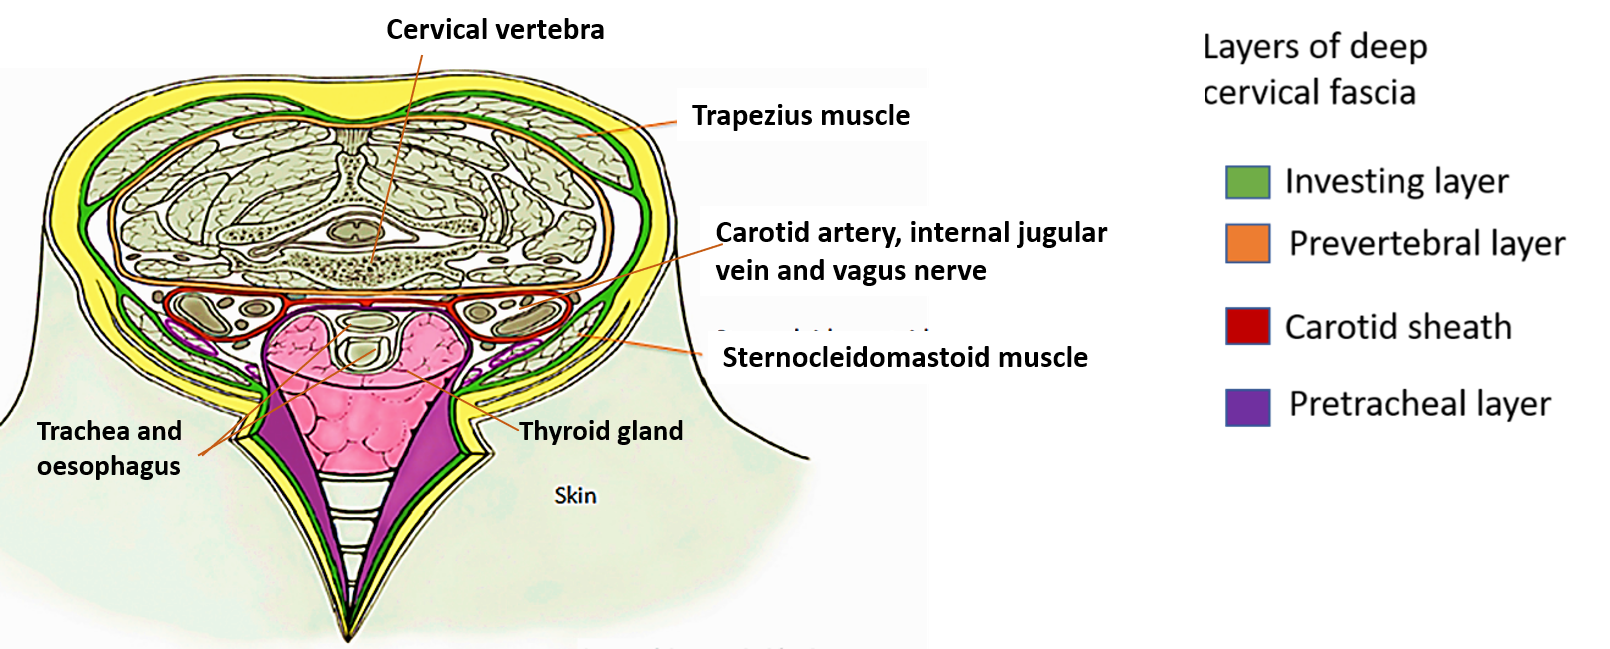 Deep Cervical Fascia Preverterbral Pretracheal Layers And Carotid